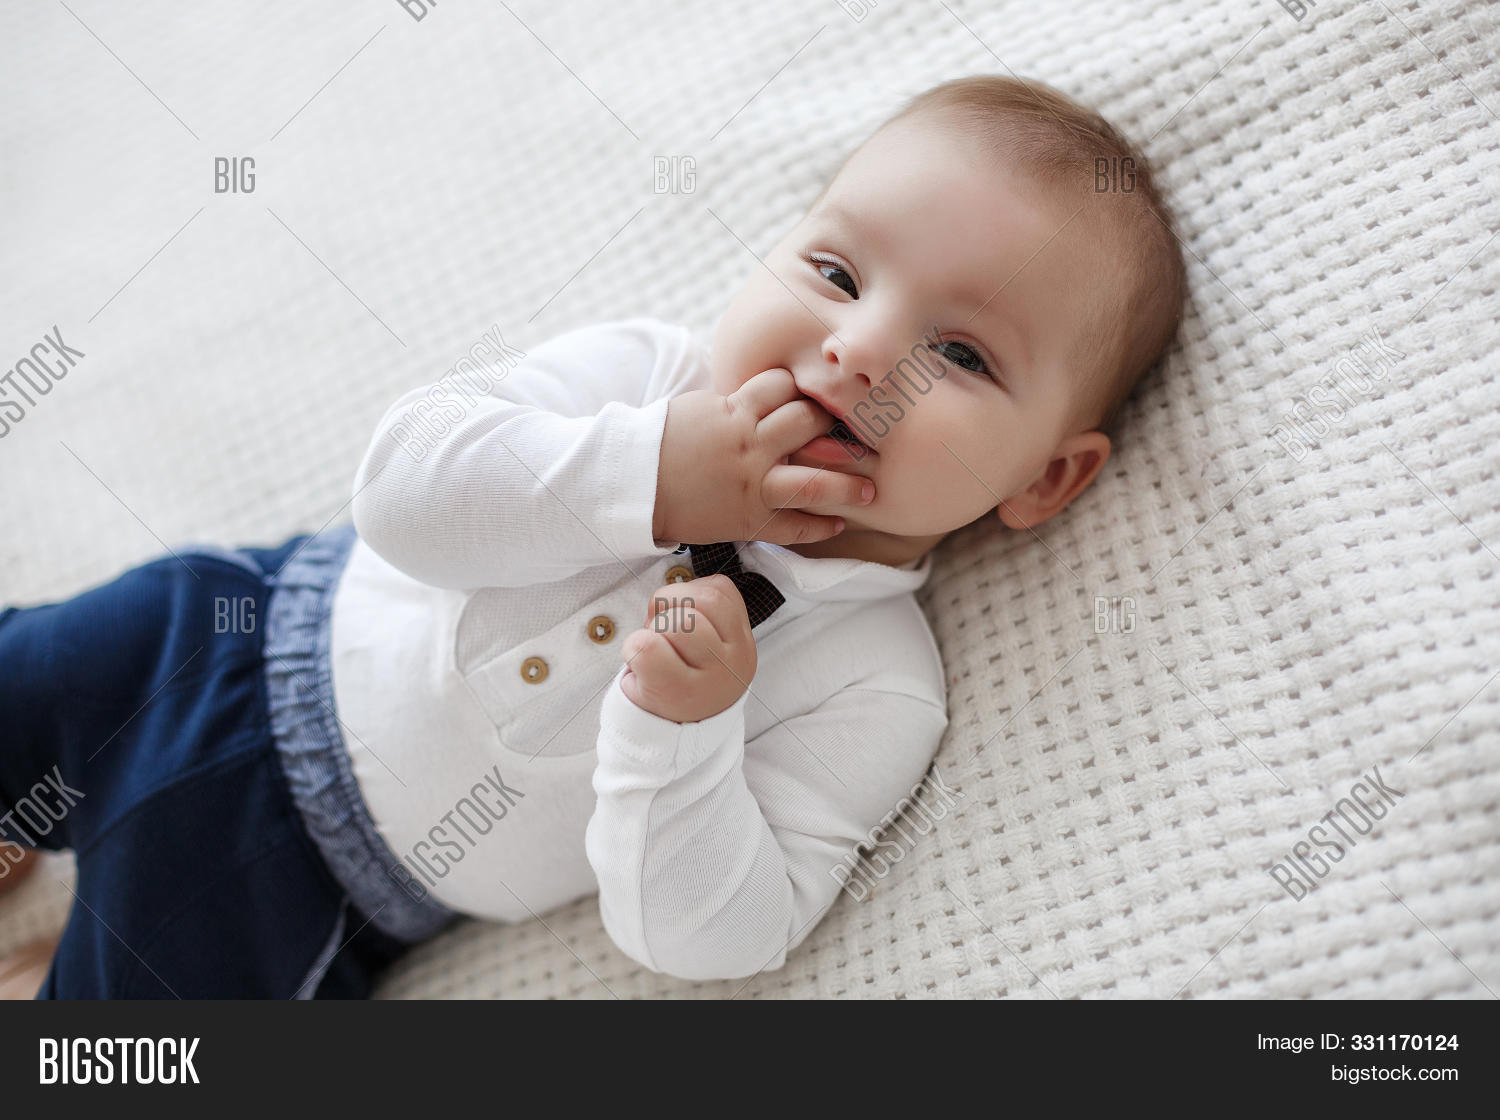 Adorable Baby Boy Image Photo Free Trial Bigstock Except that they've seen all the clothes she has in her closet! adorable baby boy image photo free